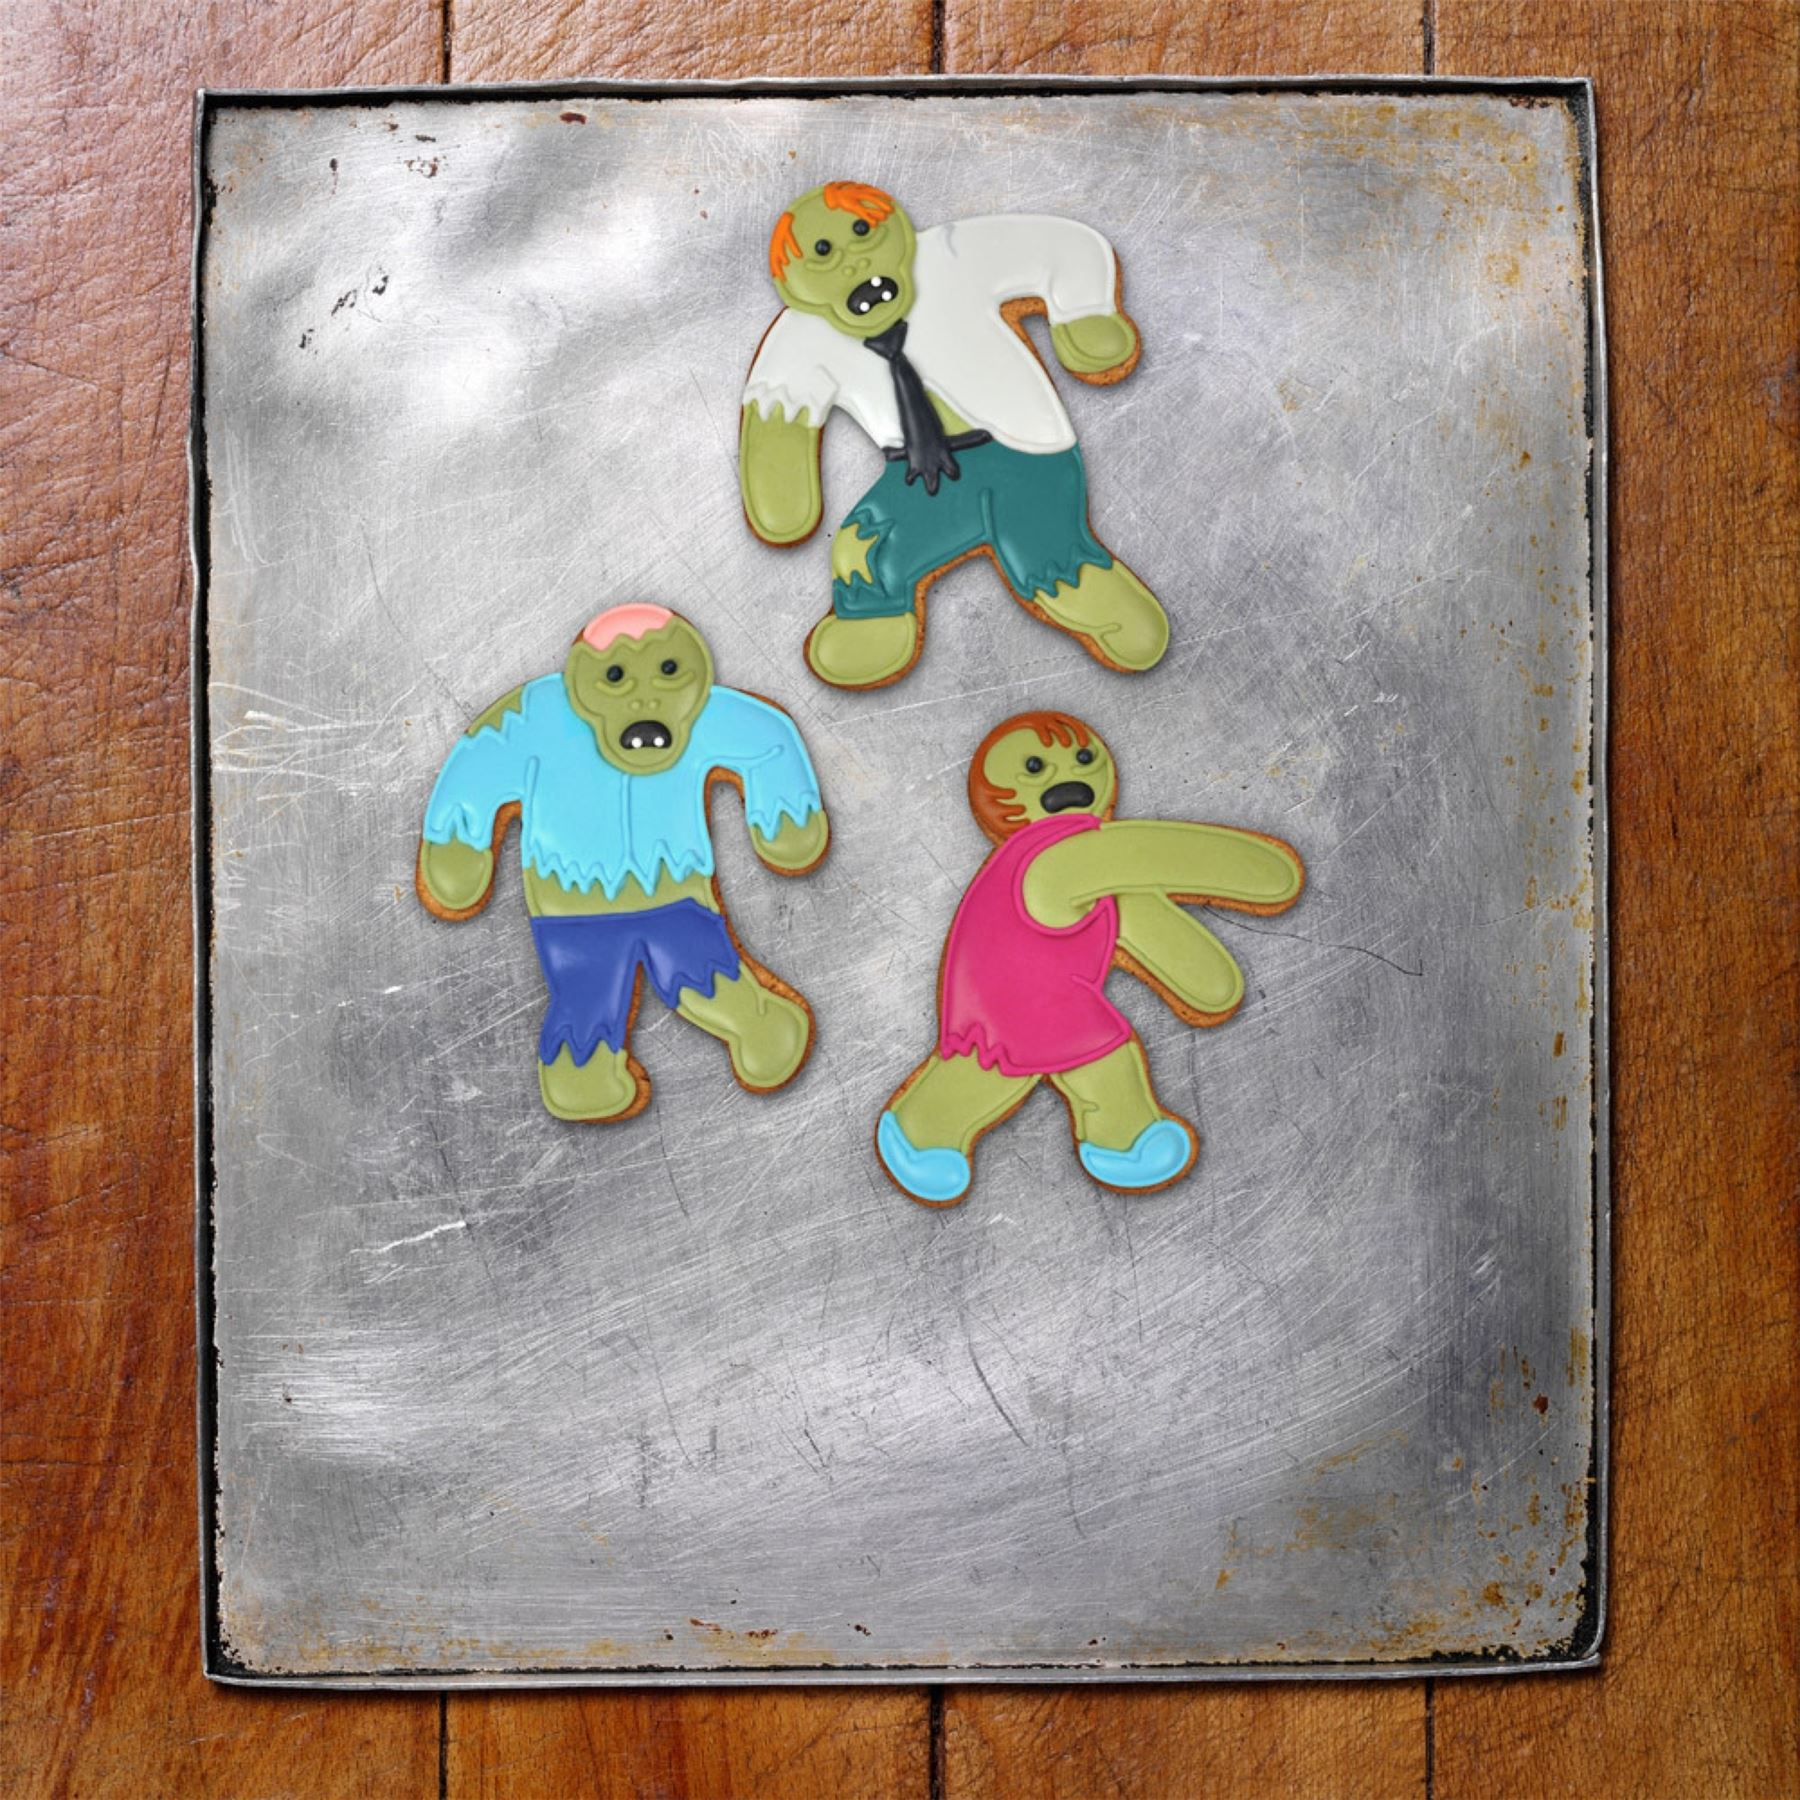 Fred-Undead-Baking-Dead-Zombie-Design-Gingerbread-Cookie-Cutters thumbnail 3